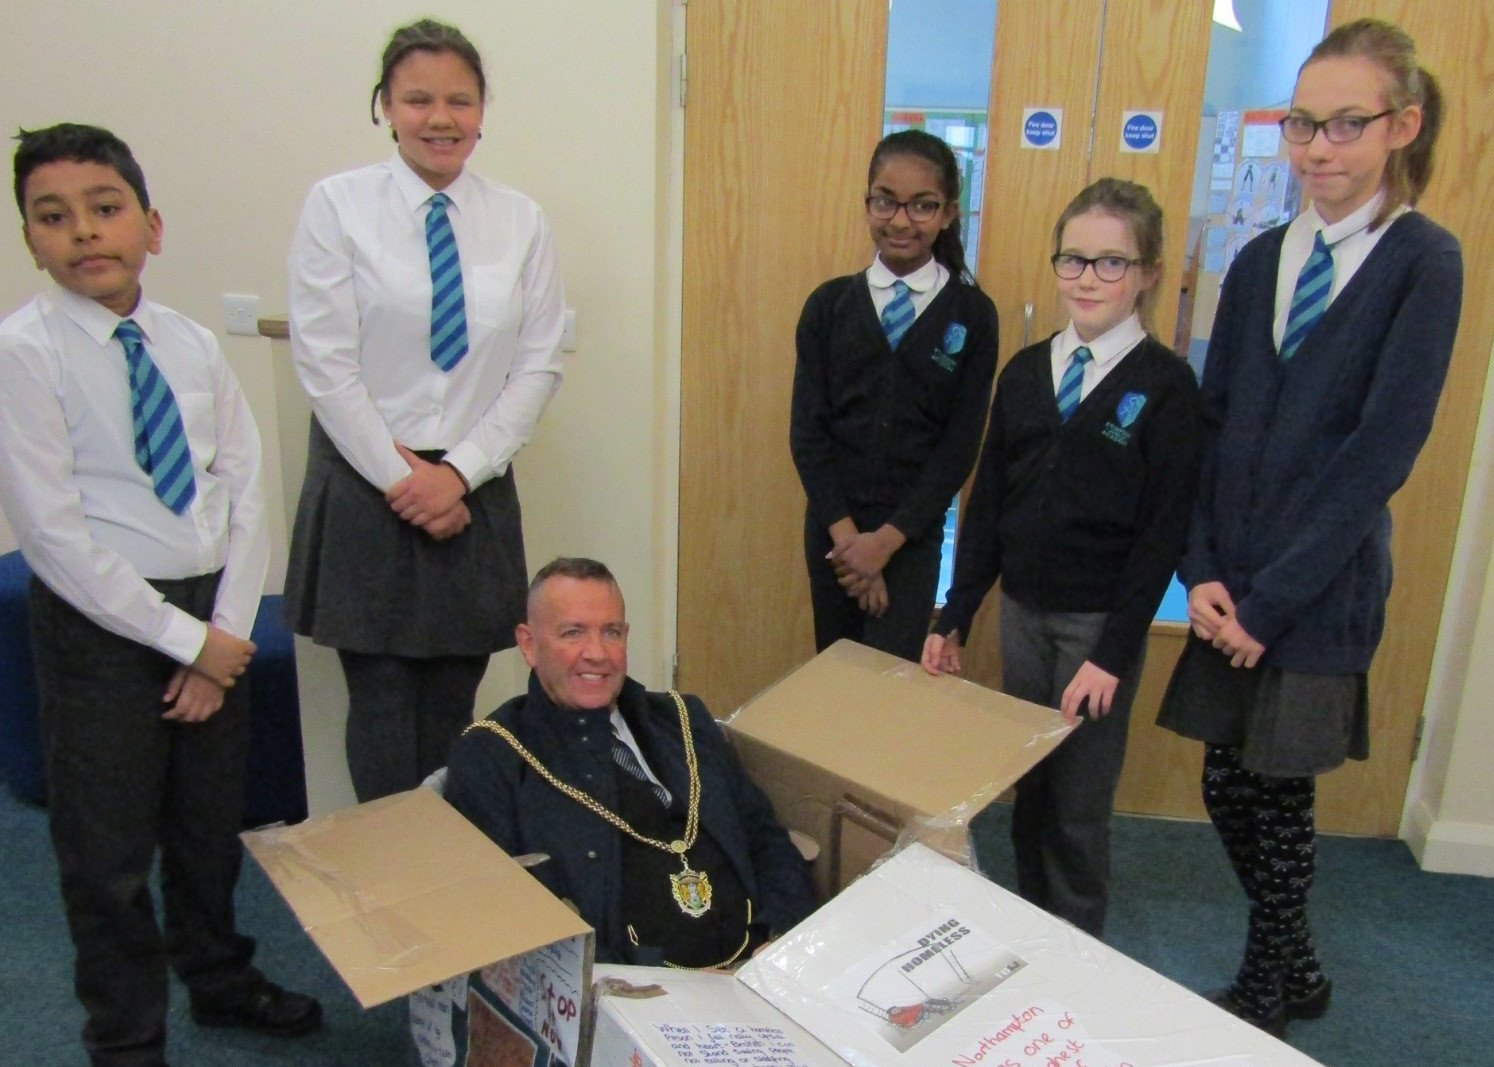 Stimpson Avenue Academy Pupils Support Mayor's Big Sleep Out